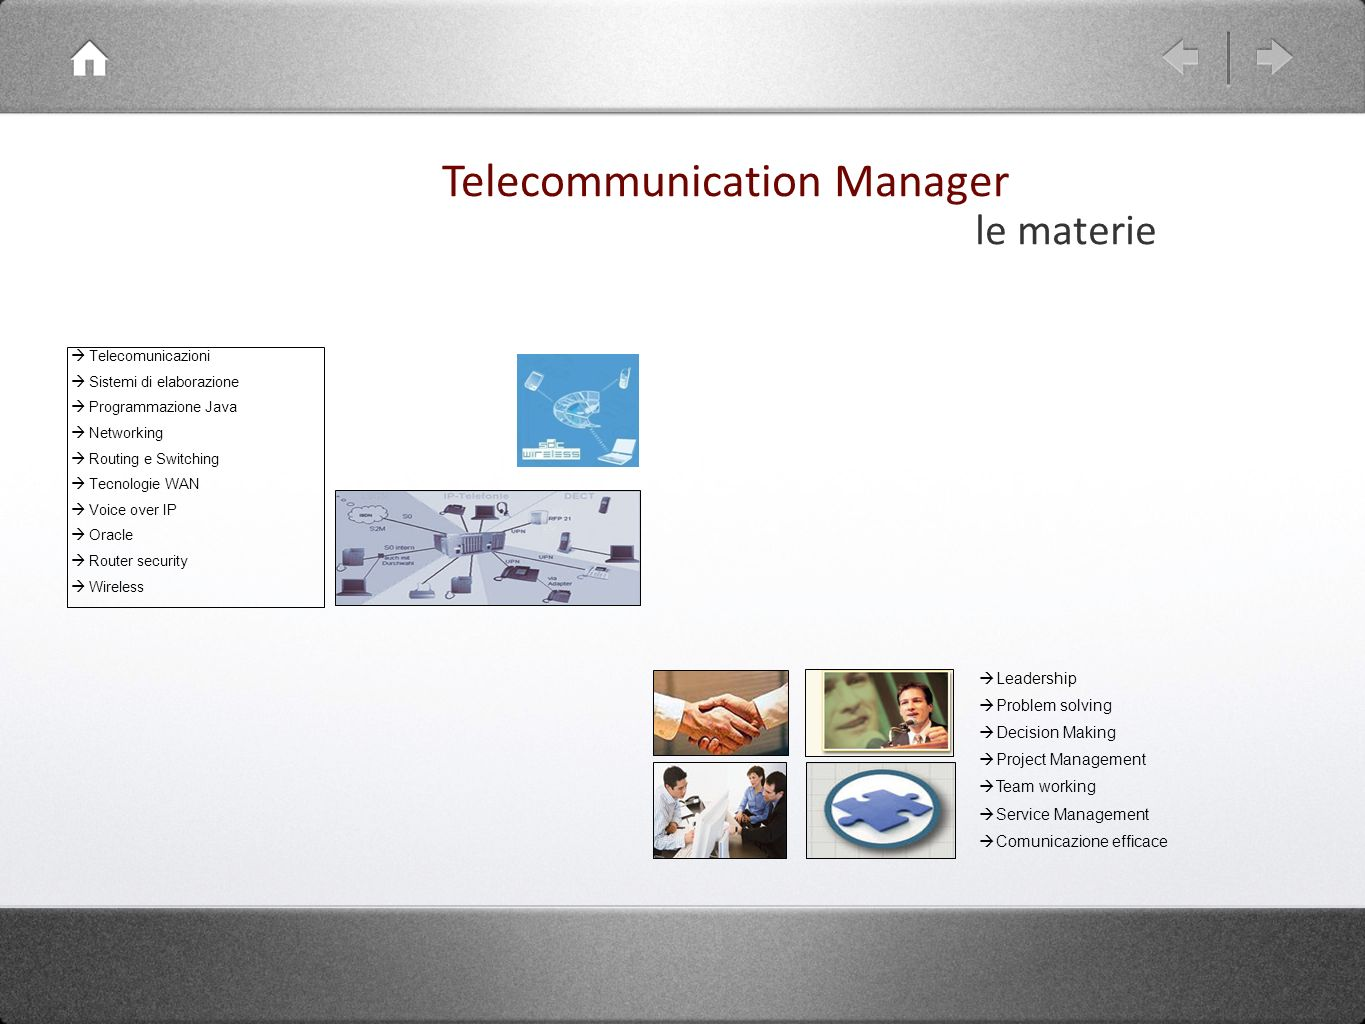 Telecomunicazioni Sistemi di elaborazione Programmazione Java Networking Routing e Switching Tecnologie WAN Voice over IP Oracle Router security Wireless Leadership Problem solving Decision Making Project Management Team working Service Management Comunicazione efficace Telecommunication Manager le materie